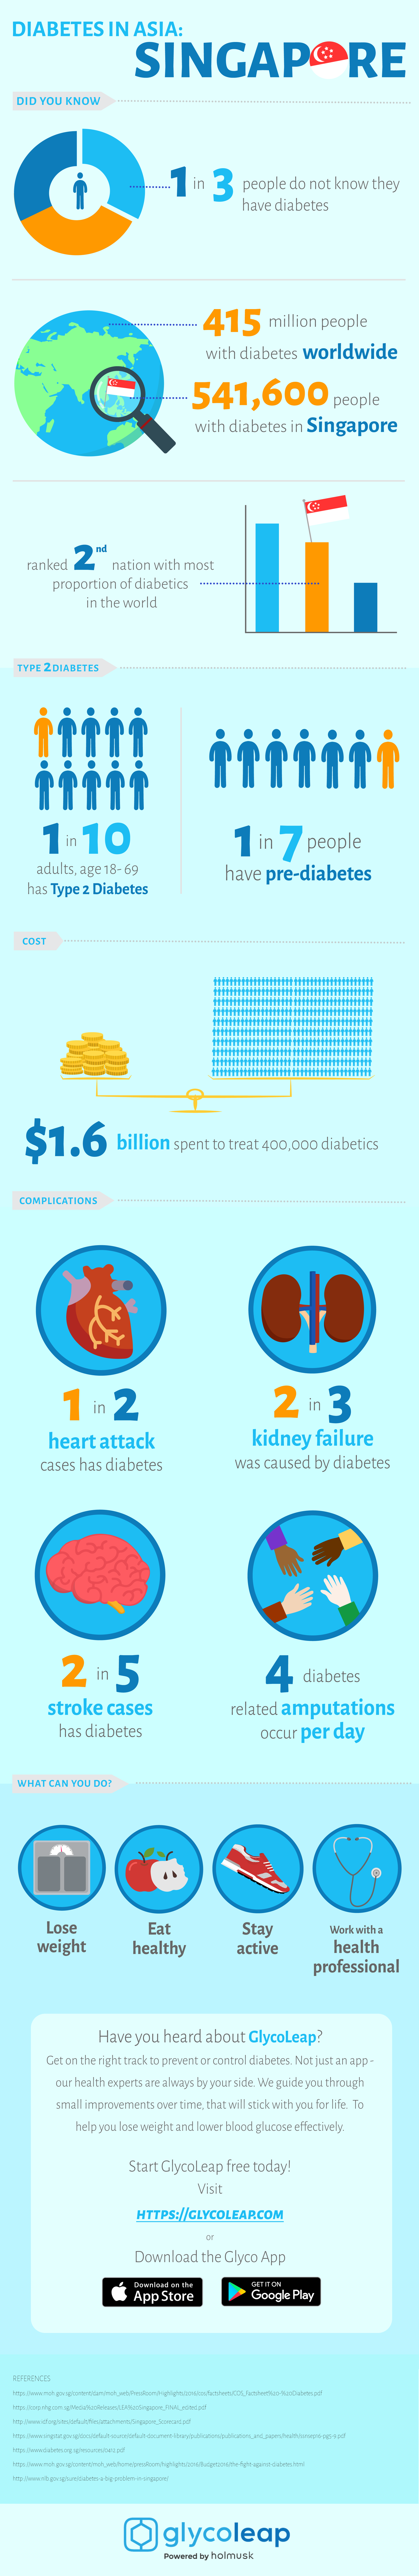 Diabetes in Asia Infographic